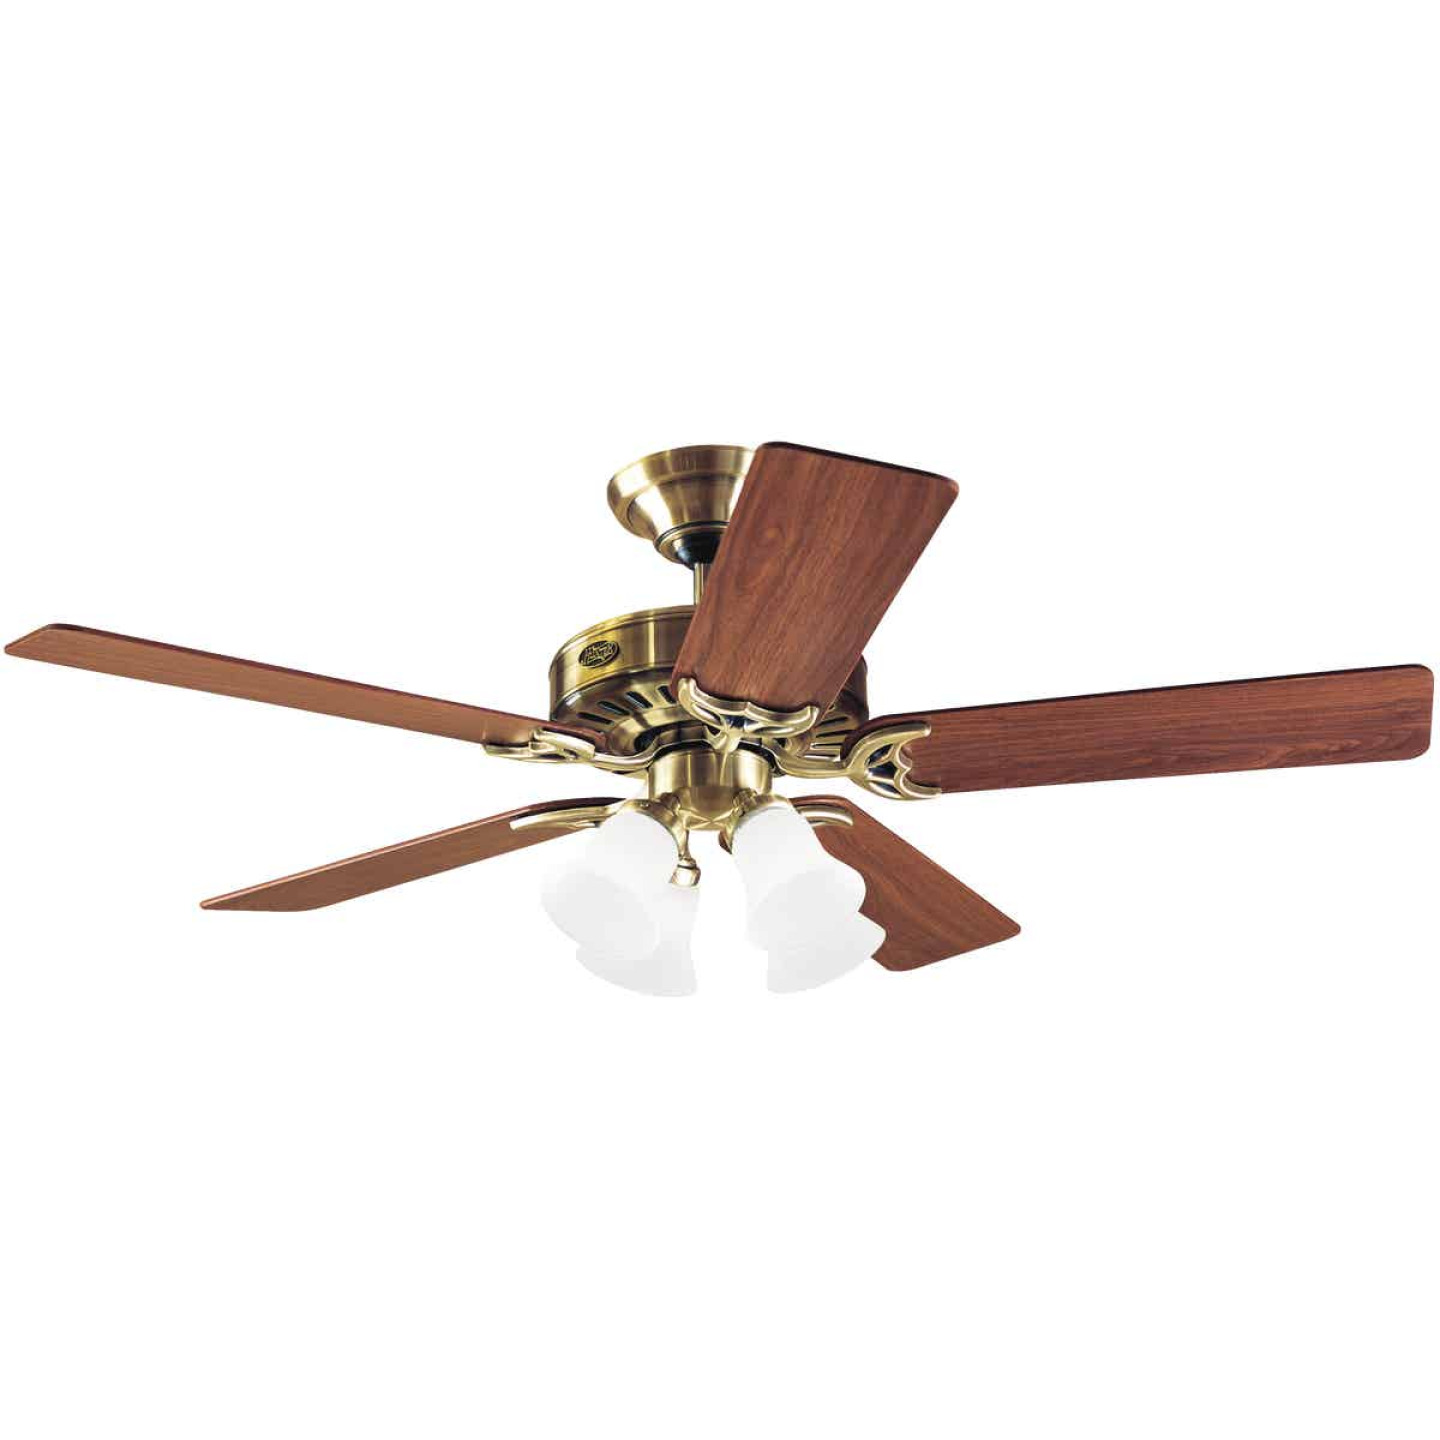 Hunter Studio 52 In. Antique Brass Ceiling Fan with Light Kit Image 1